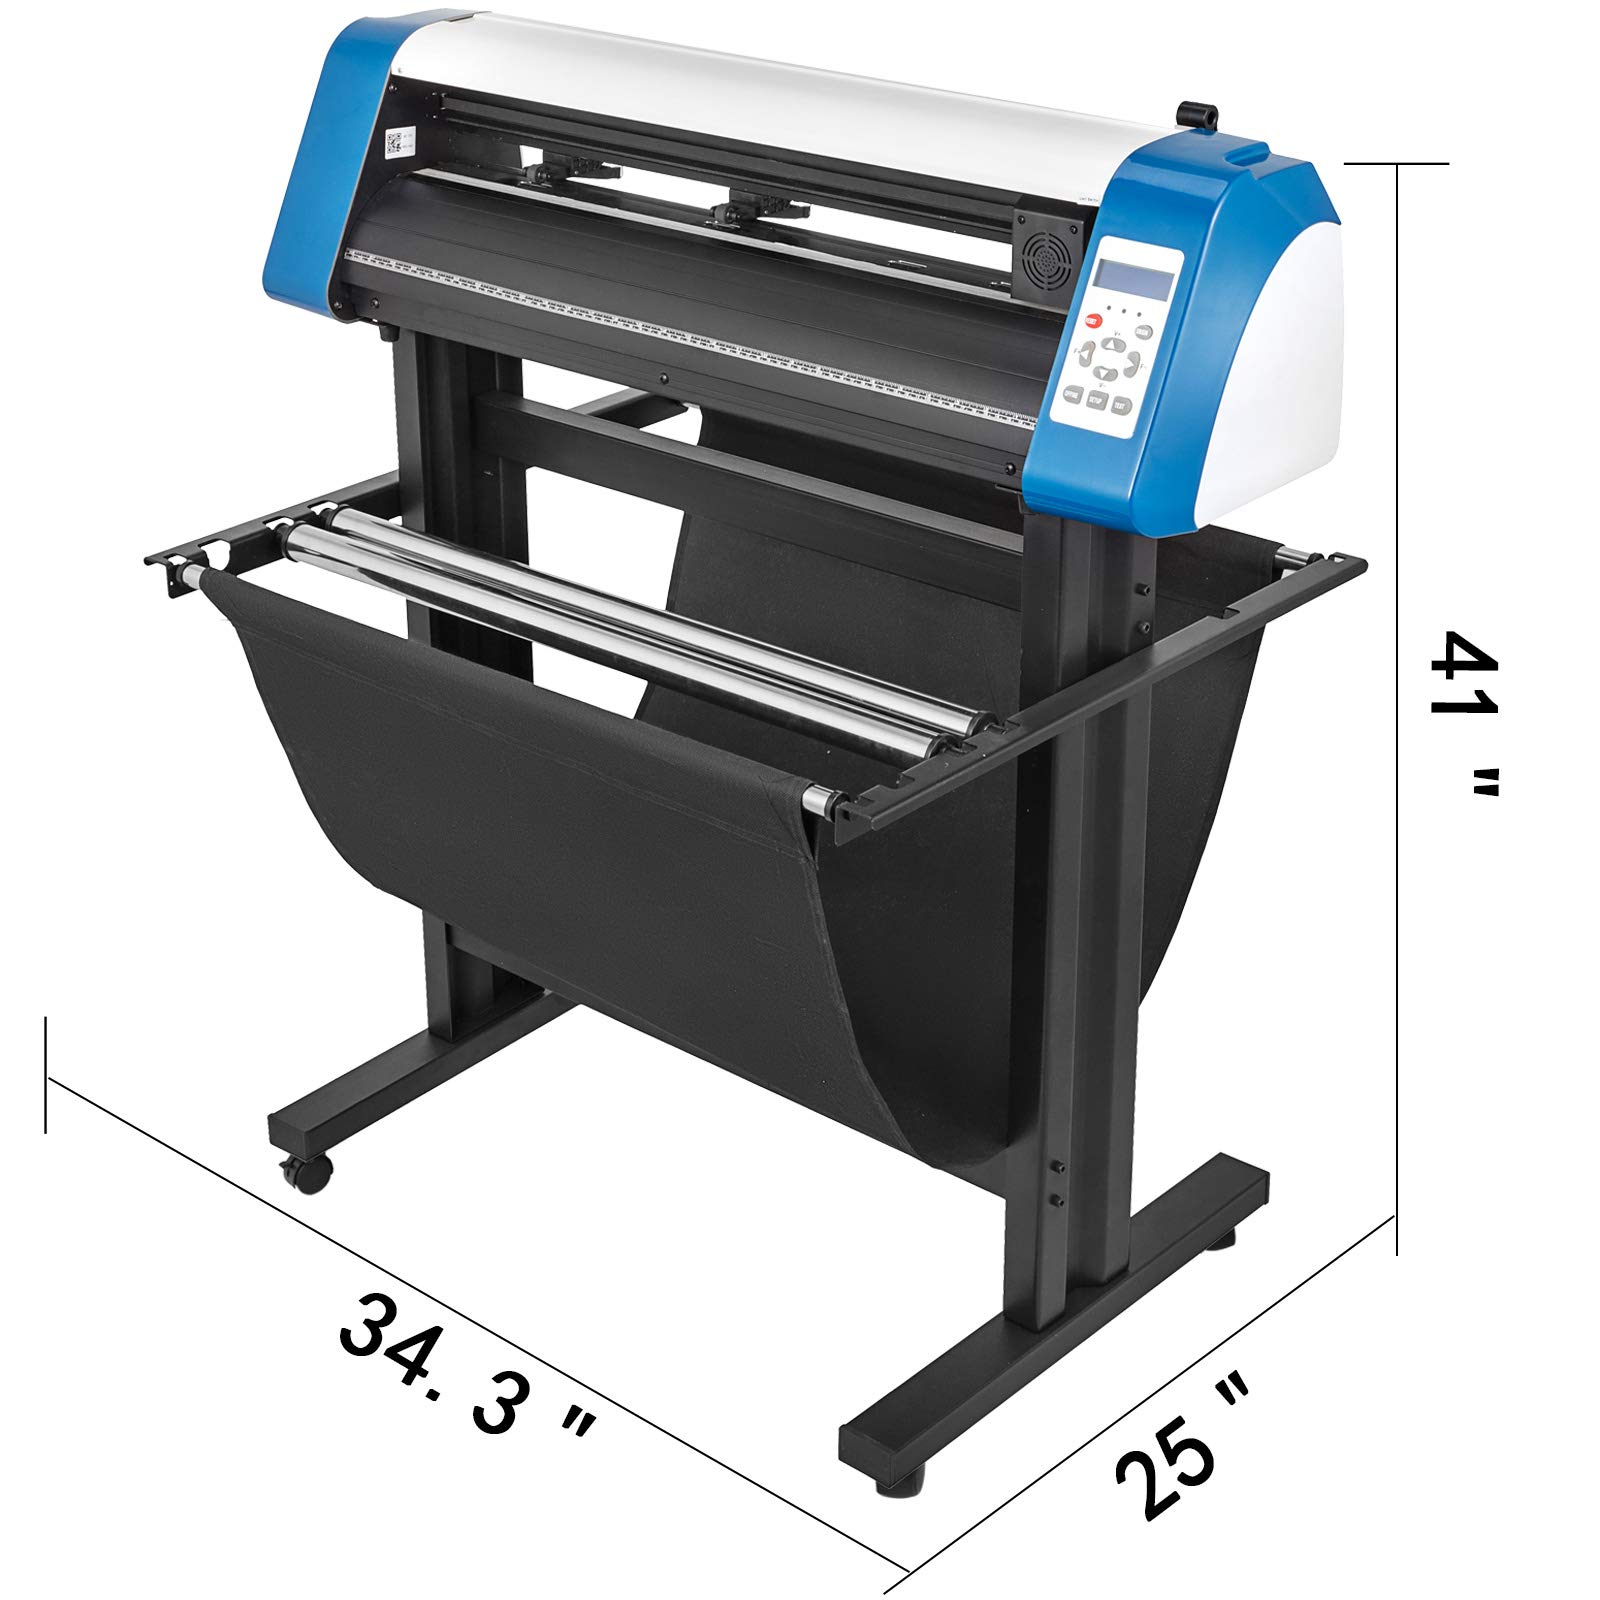 VEVOR Vinyl Cutter 28 inch Vinyl Cutter Machine Semi-Automatic DIY Vinyl Printer Cutter Machine Manual Positioning Sign Cutting with Floor Stand Signmaster Software by VEVOR (Image #2)